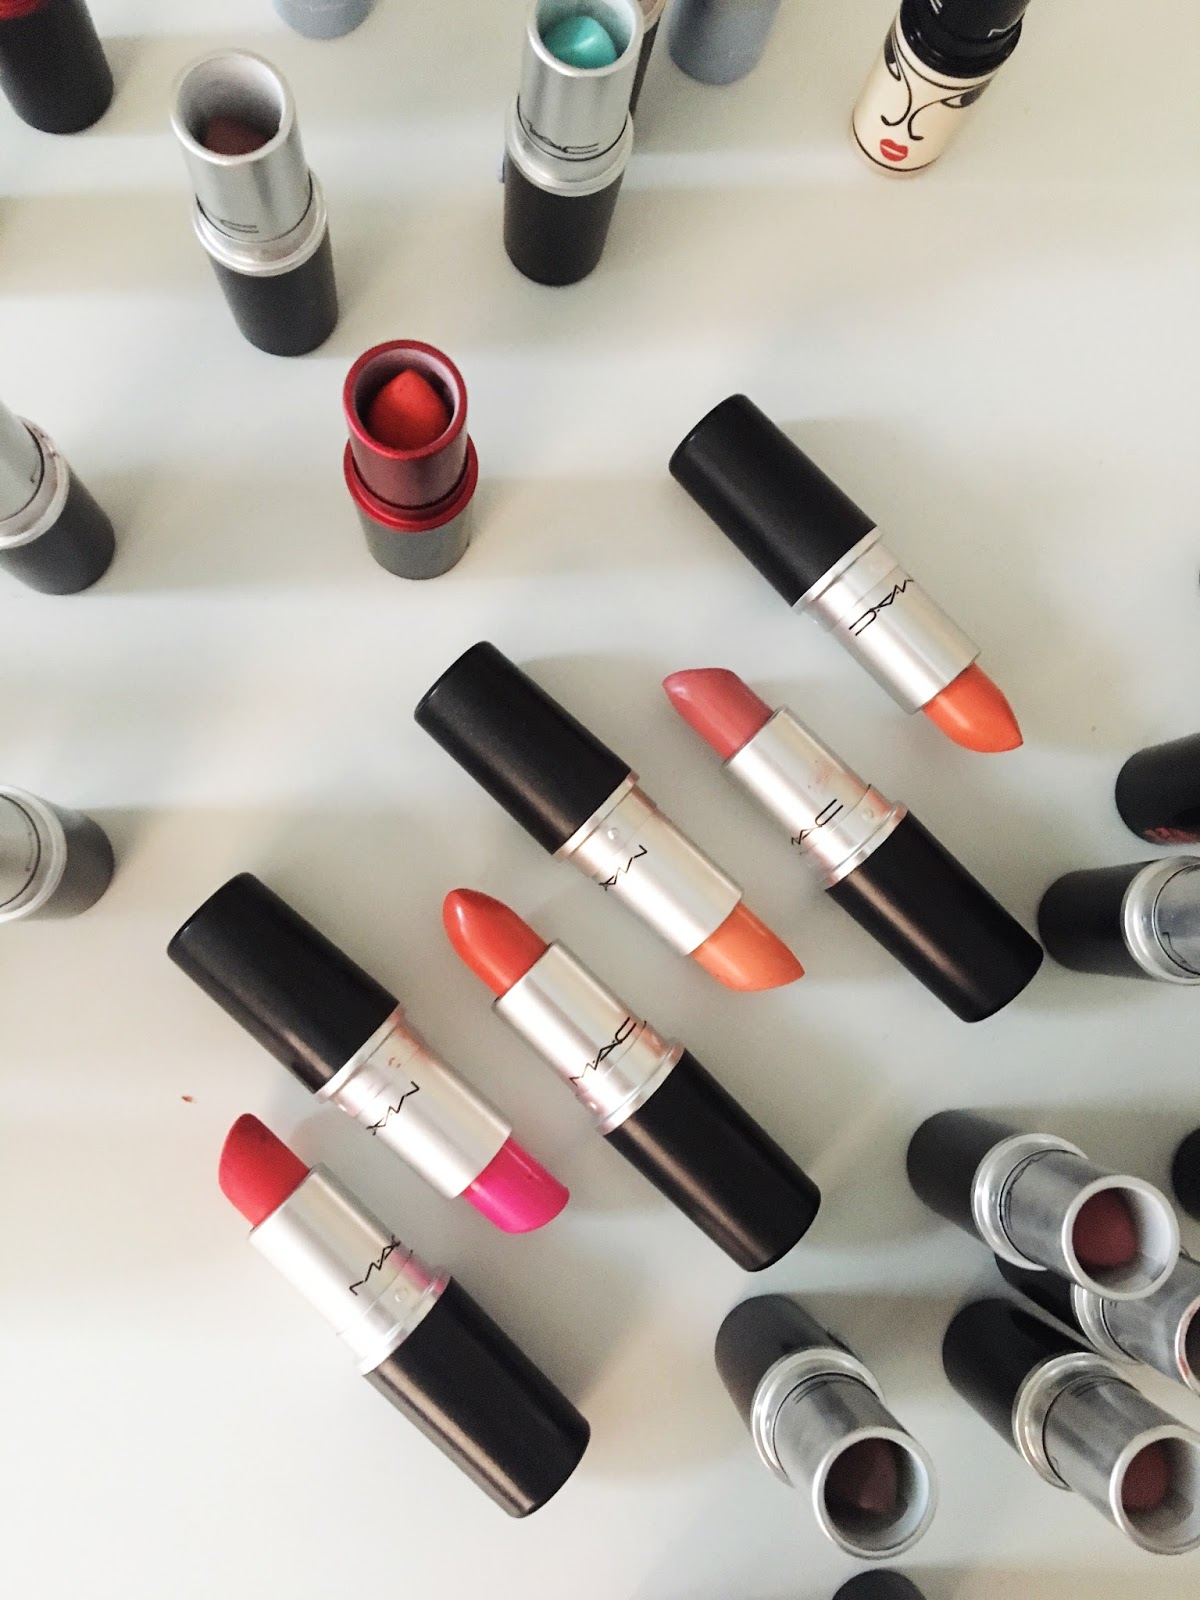 Pink mac lipsticks